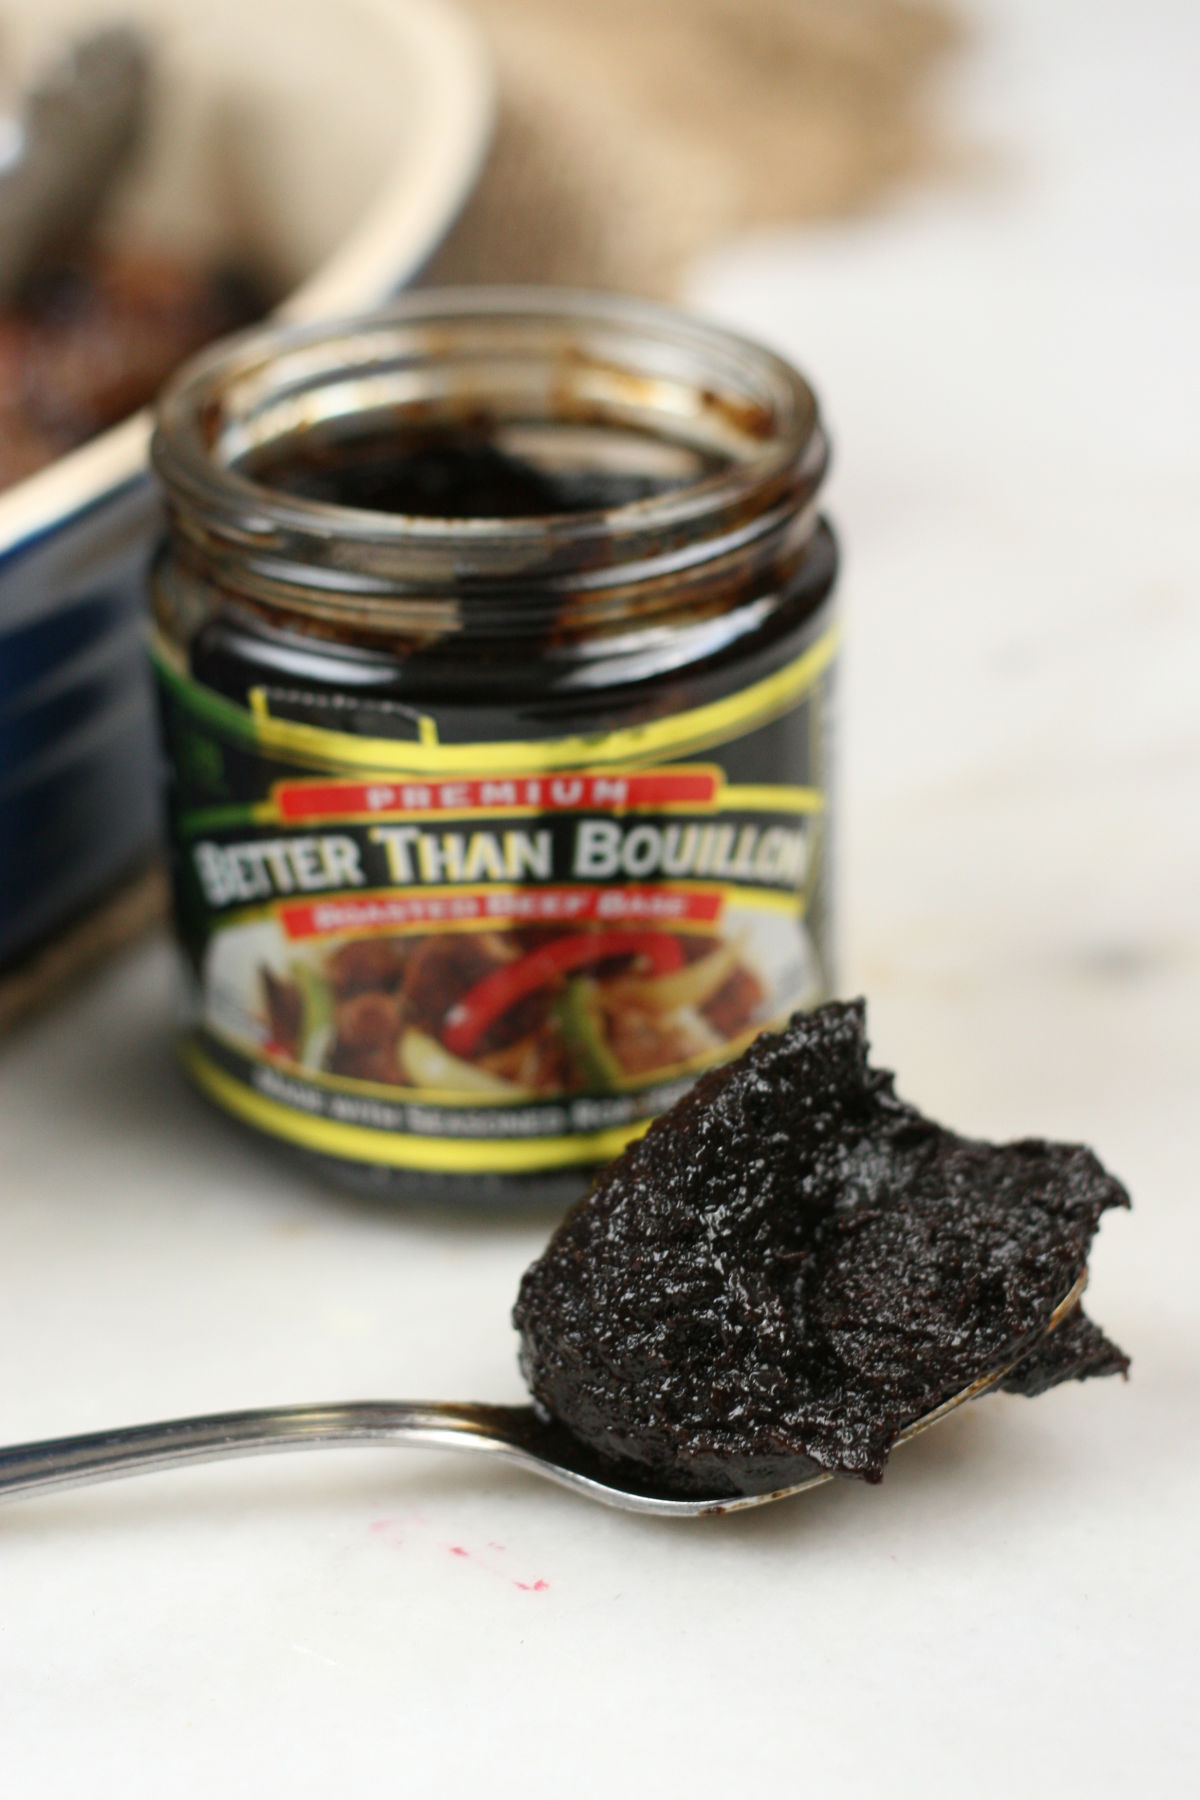 jar of better than bouillon with spoon.